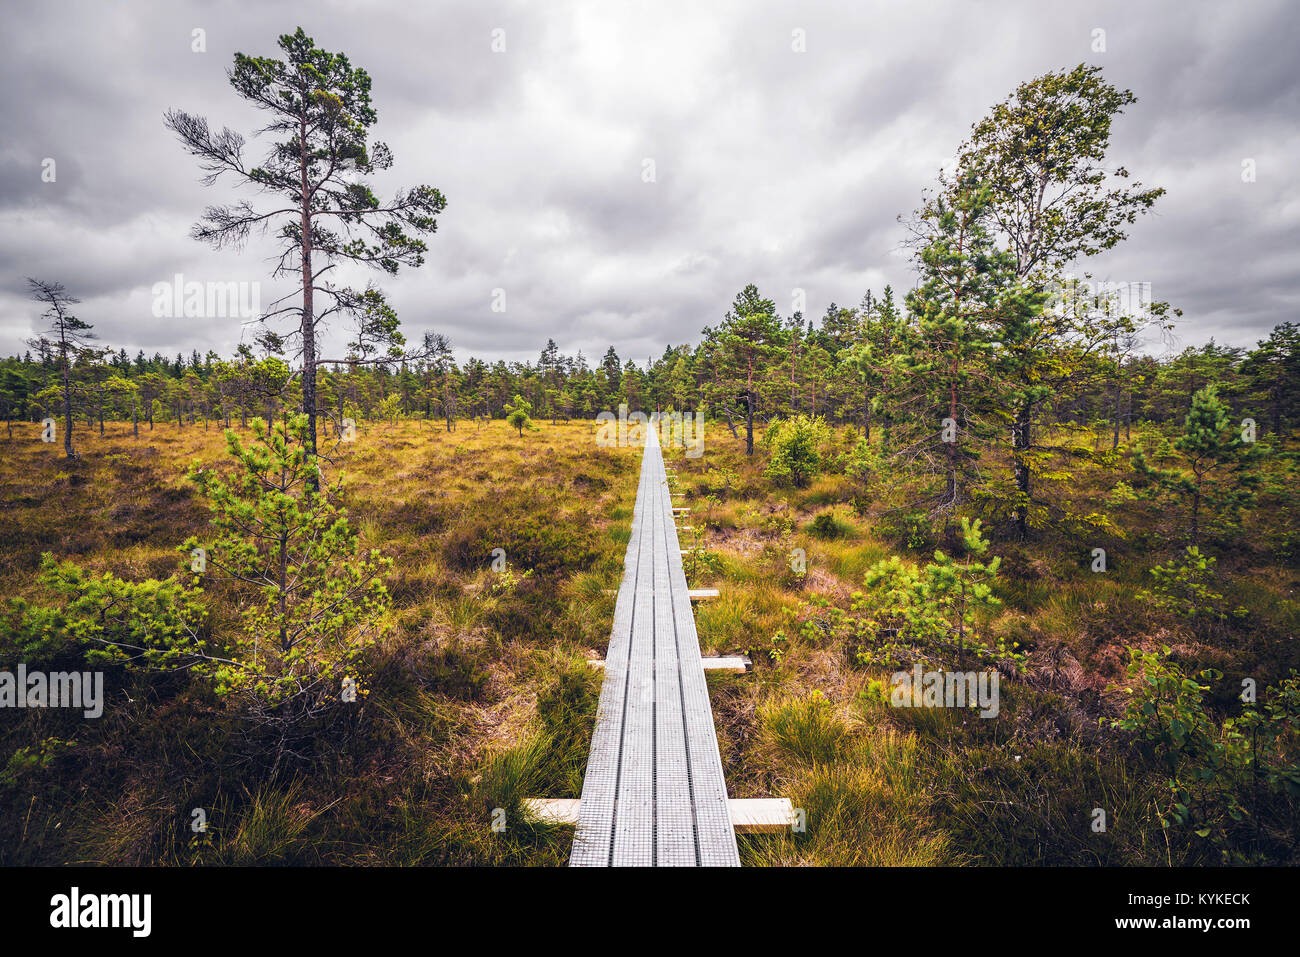 Wooden trail in the wilderness with trees and grass under a cloudy sky in a bog - Stock Image